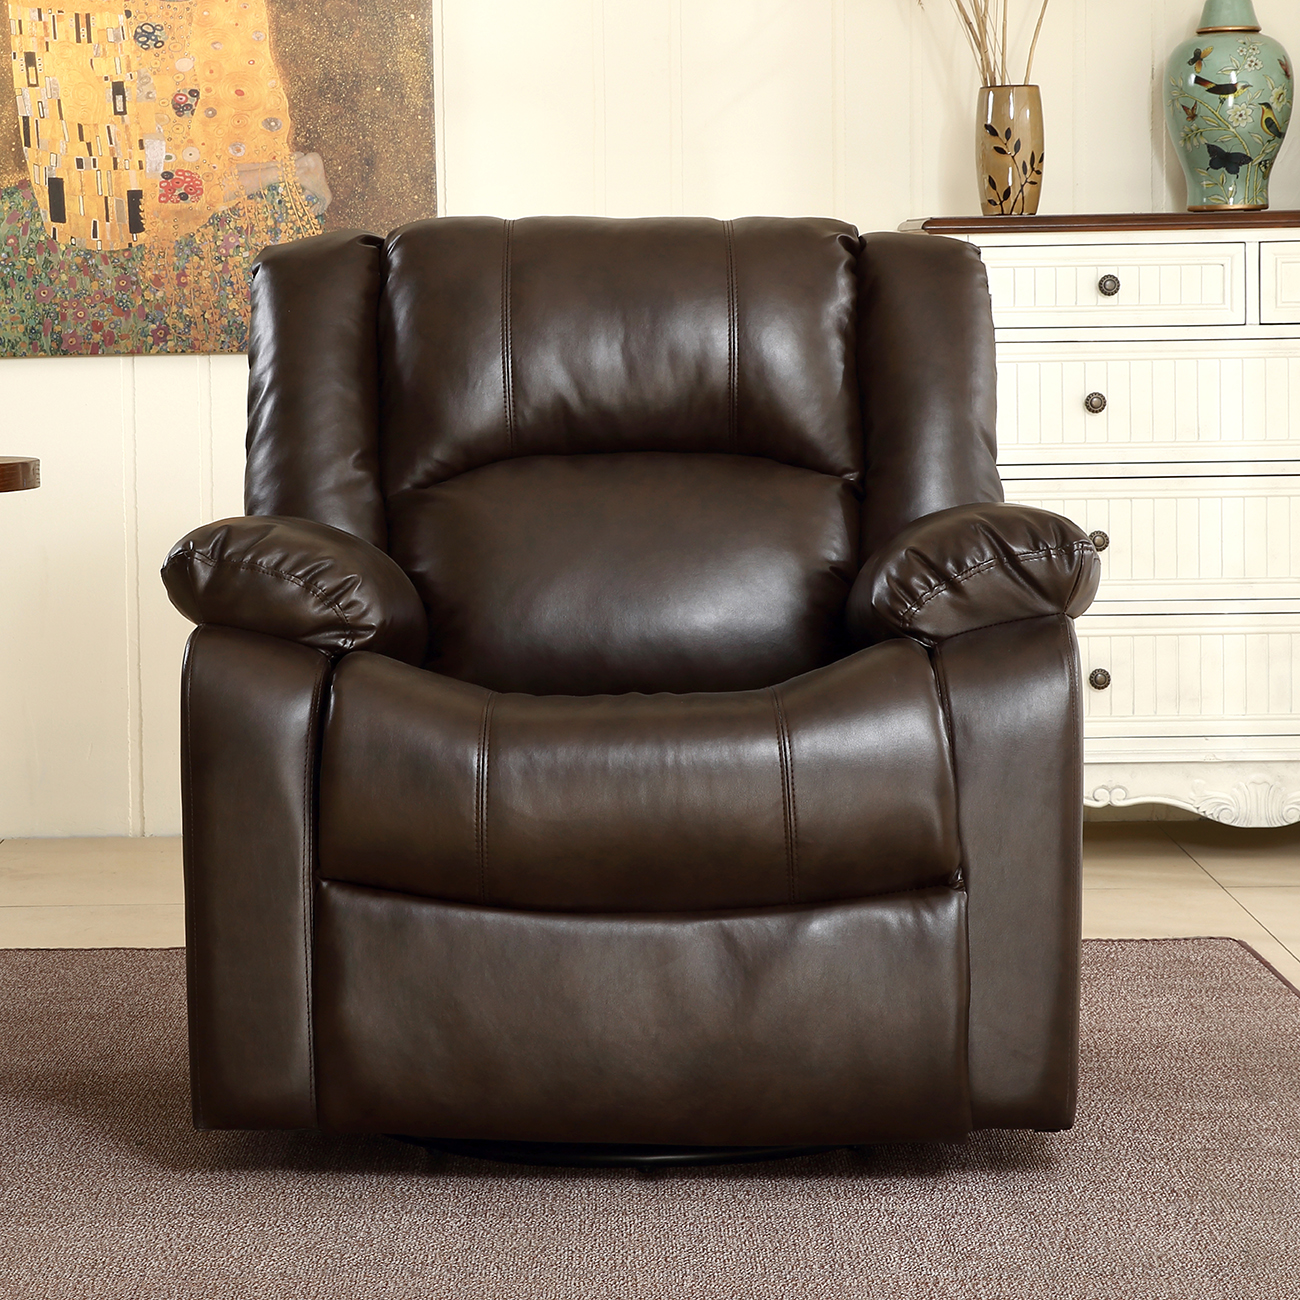 Black Living Room Chair New Recliner And Rocking Swivel Chair Leather Seat Living